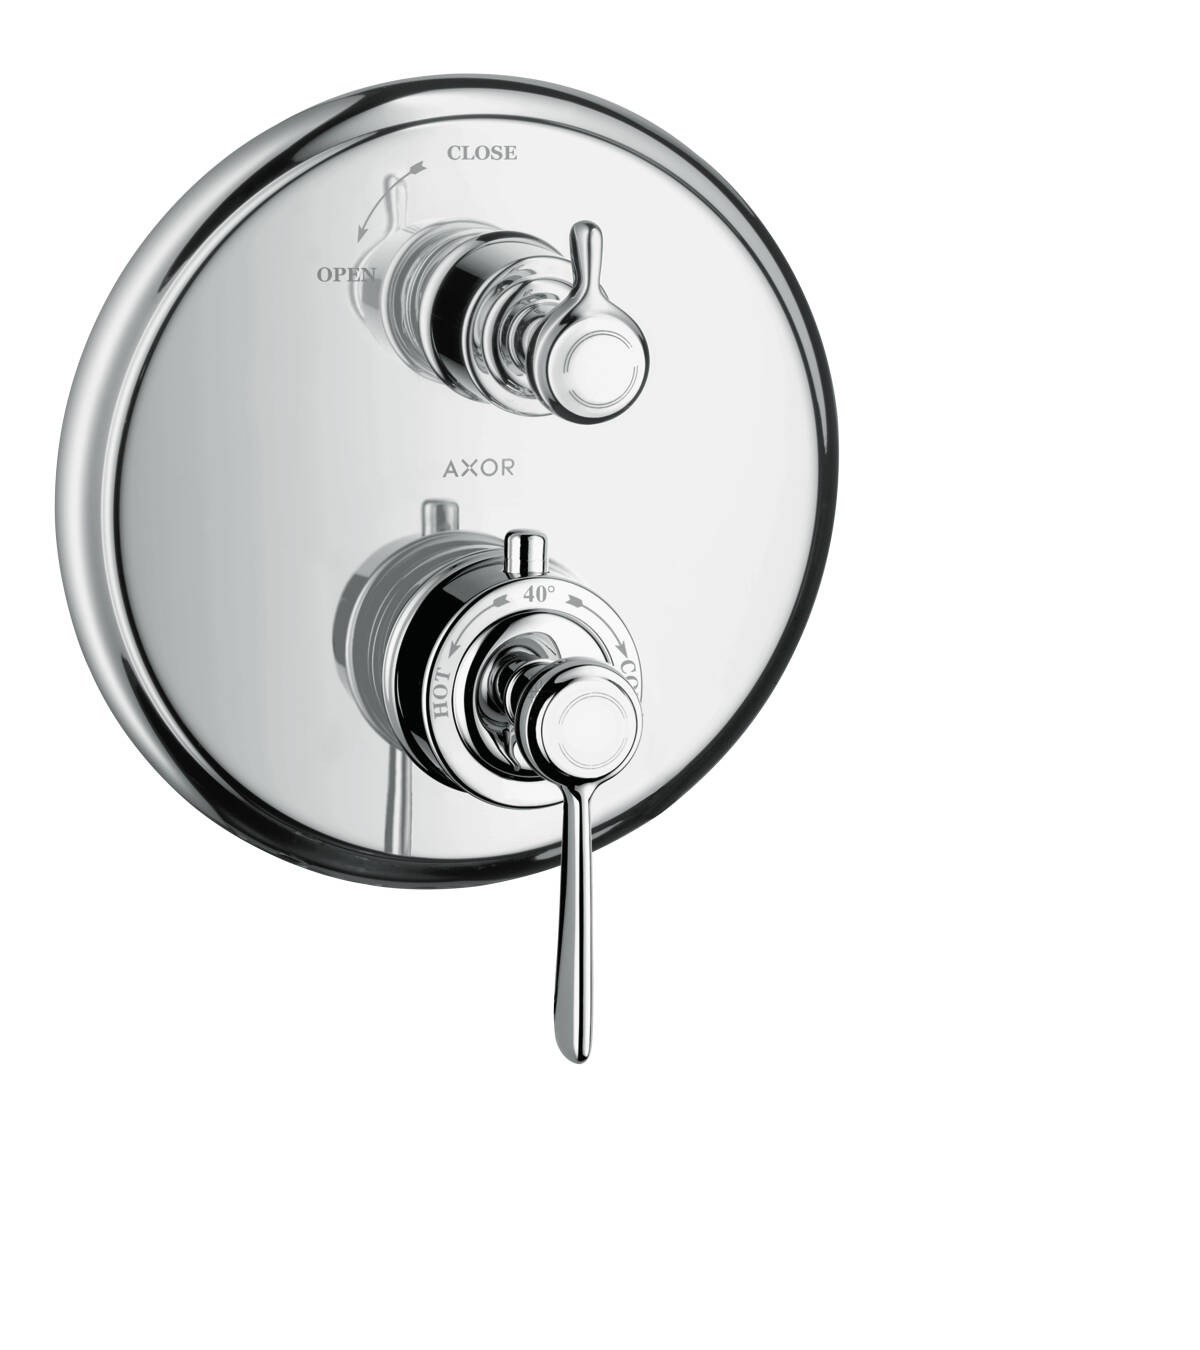 Thermostat for concealed installation with lever handle and shut-off valve, Polished Nickel, 16801830